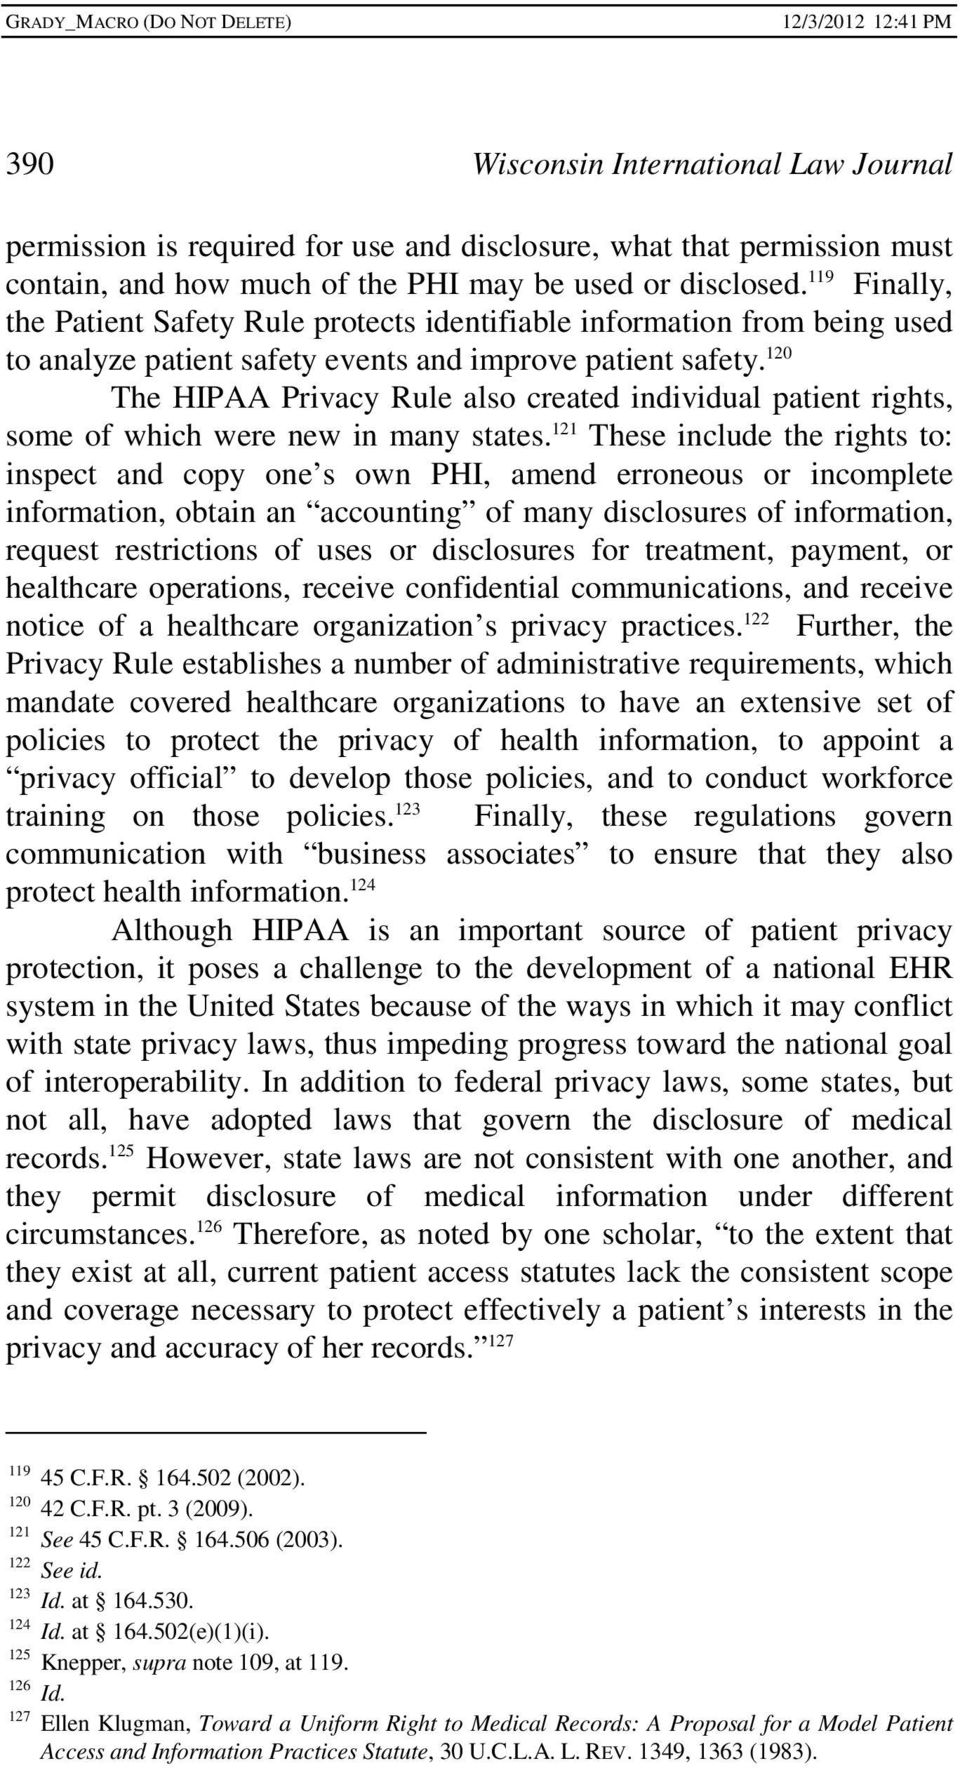 120 The HIPAA Privacy Rule also created individual patient rights, some of which were new in many states.